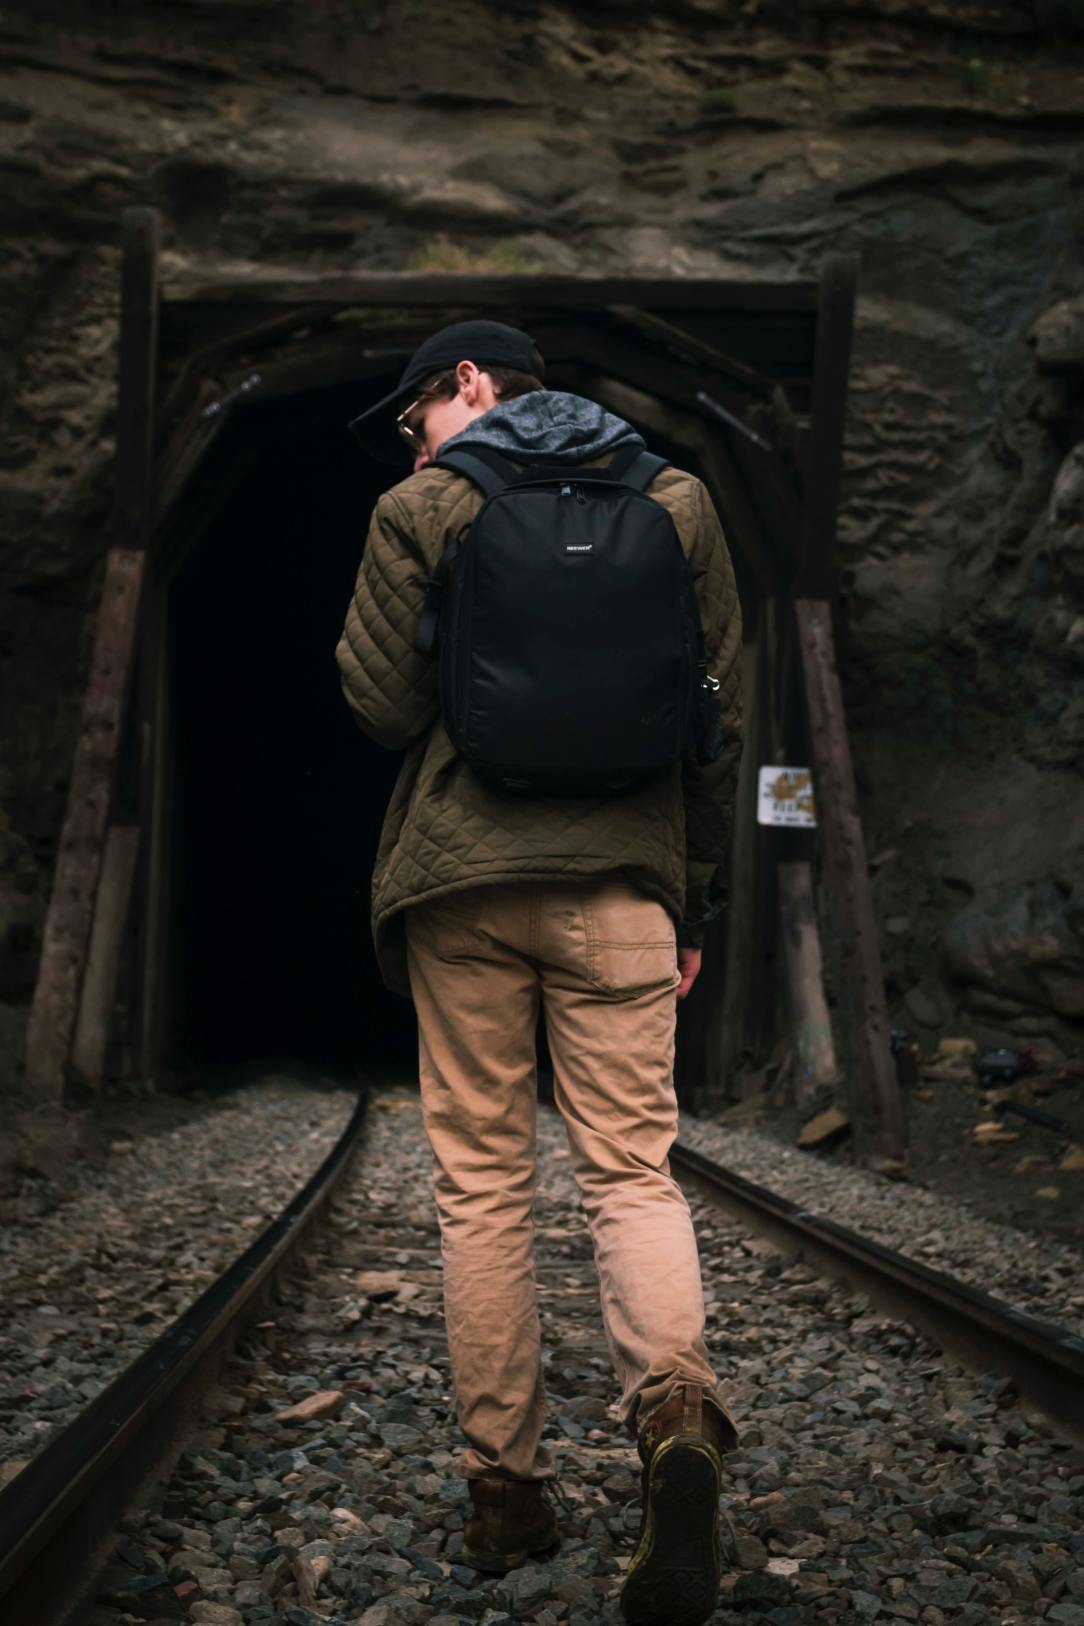 A picture of a person looking back